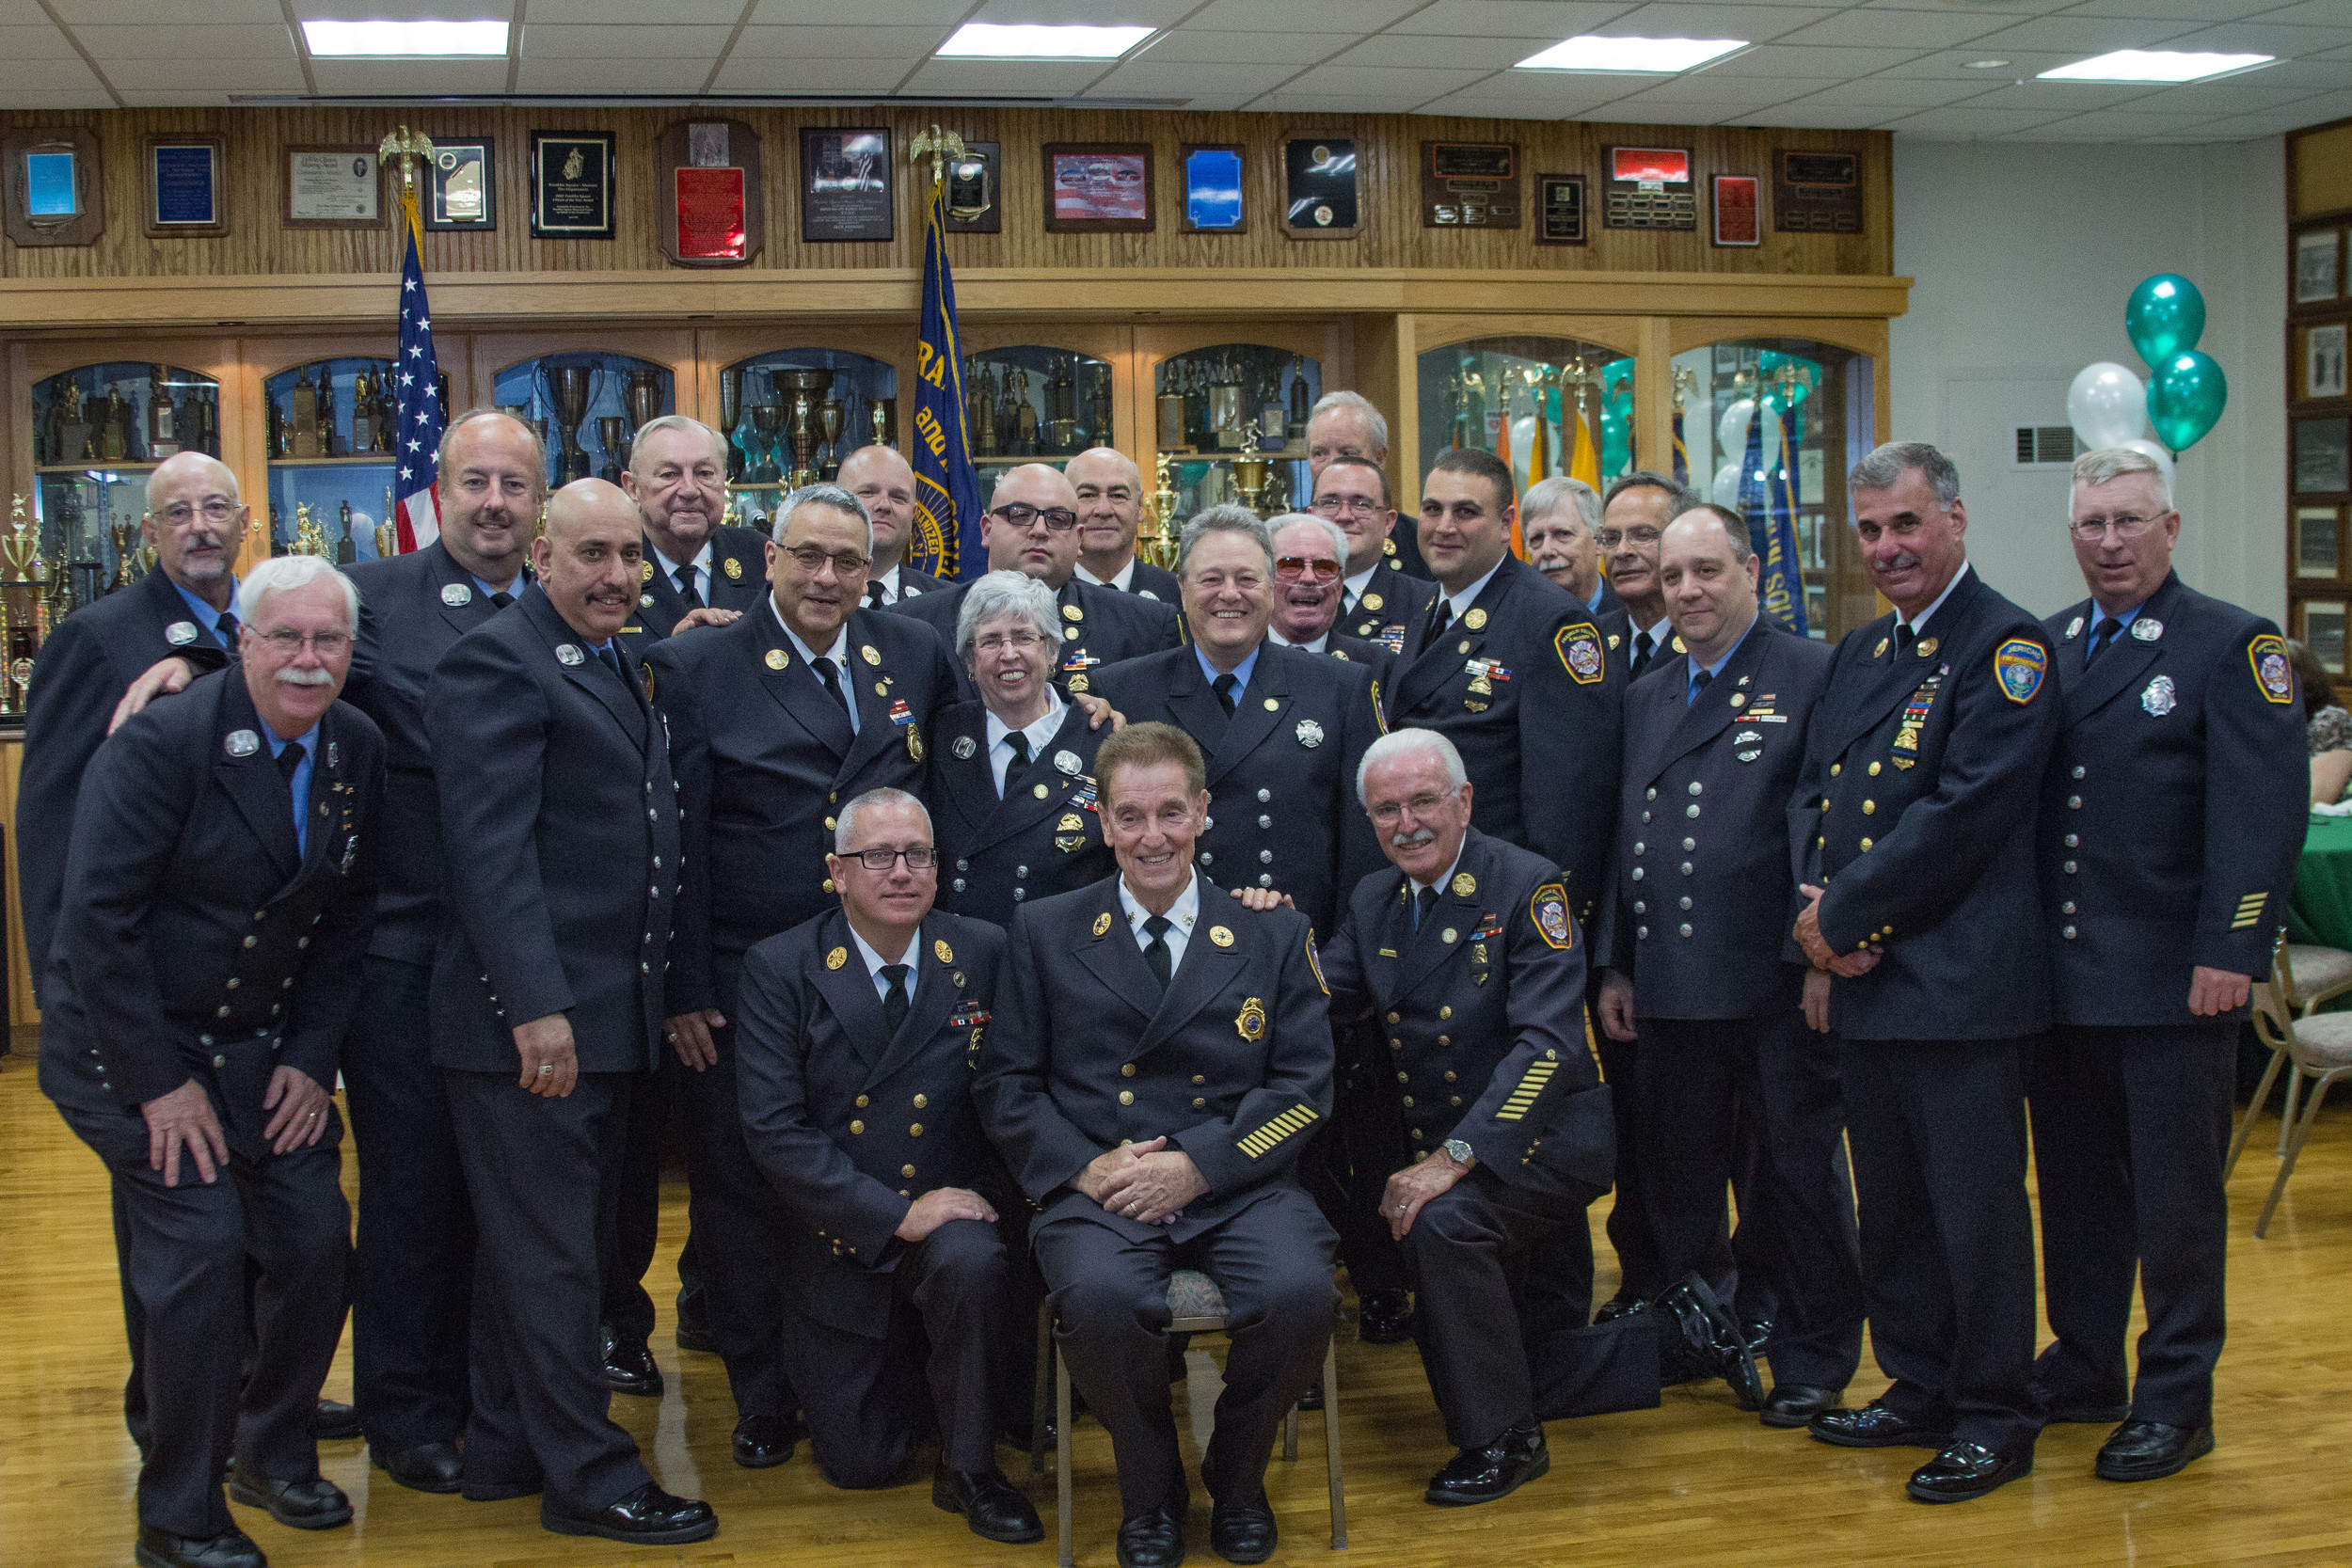 Together, the Franklin Square and Munson Fire Department works to protect and serve the community. The department honored Dennis Lyons at a dinner on June 24.